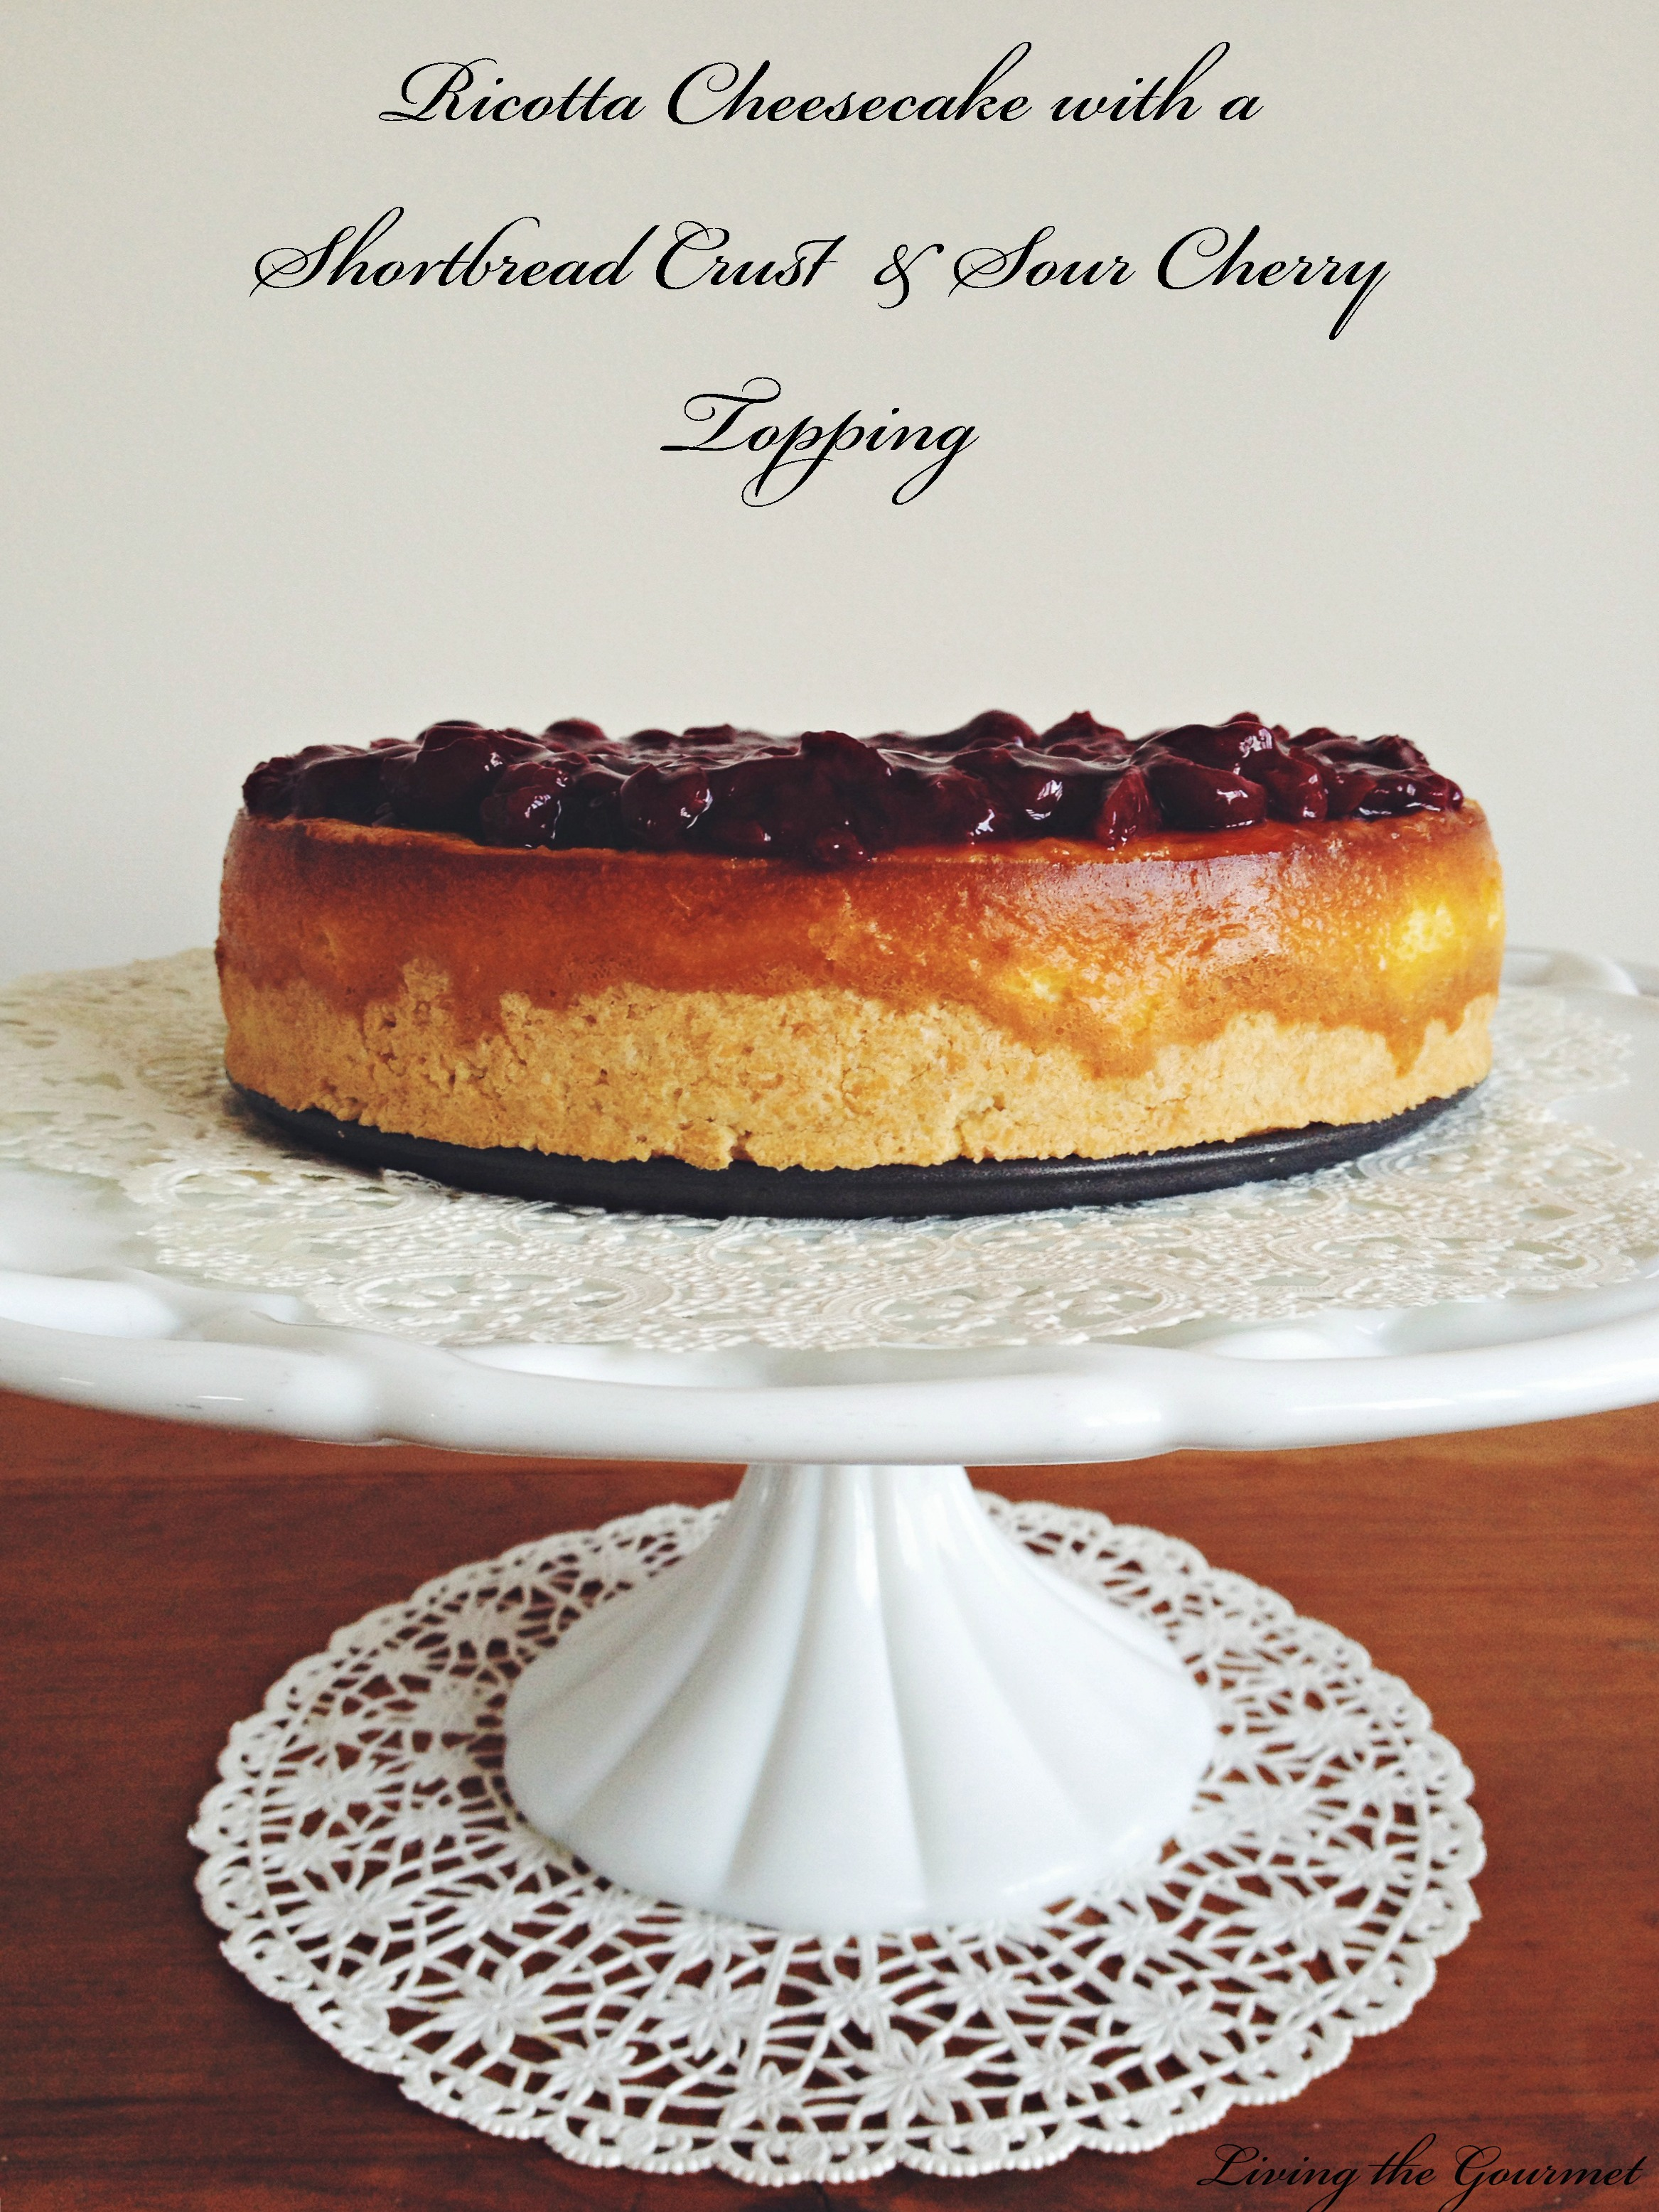 Living the Gourmet: Ricotta Cheesecake with Shortbread Crust & Sour Cherry Topping